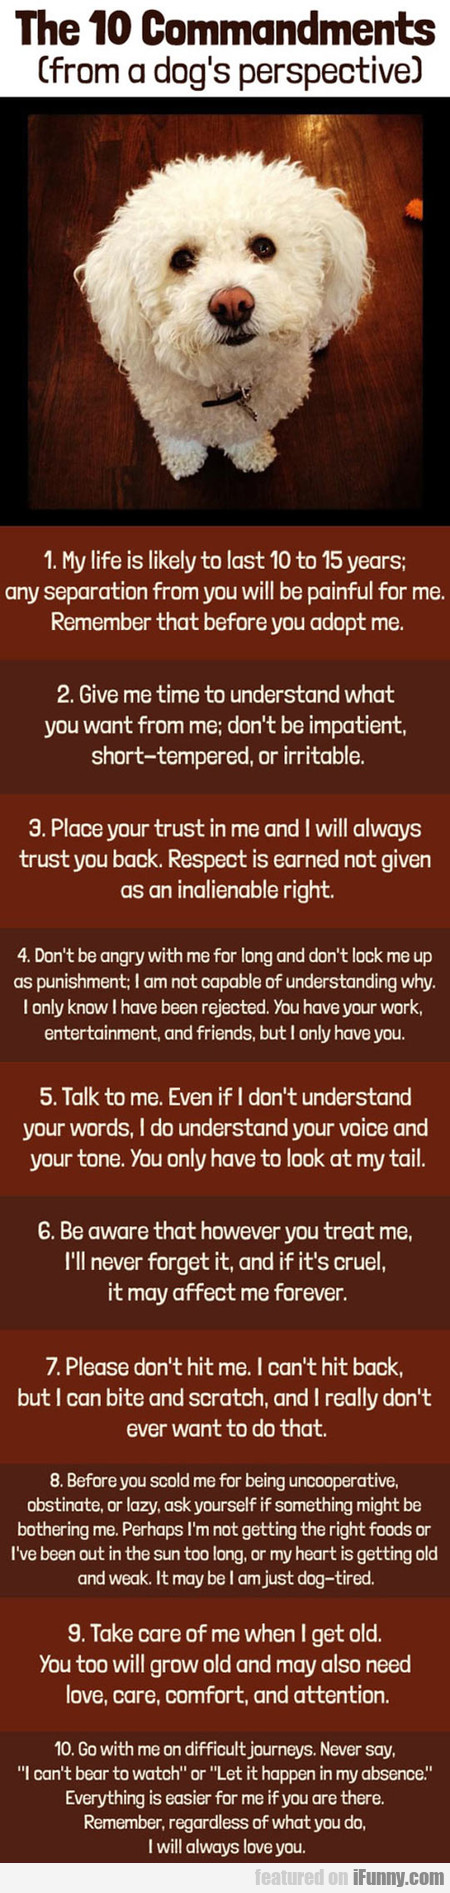 The 10 Commandments From A Dog's Perspective